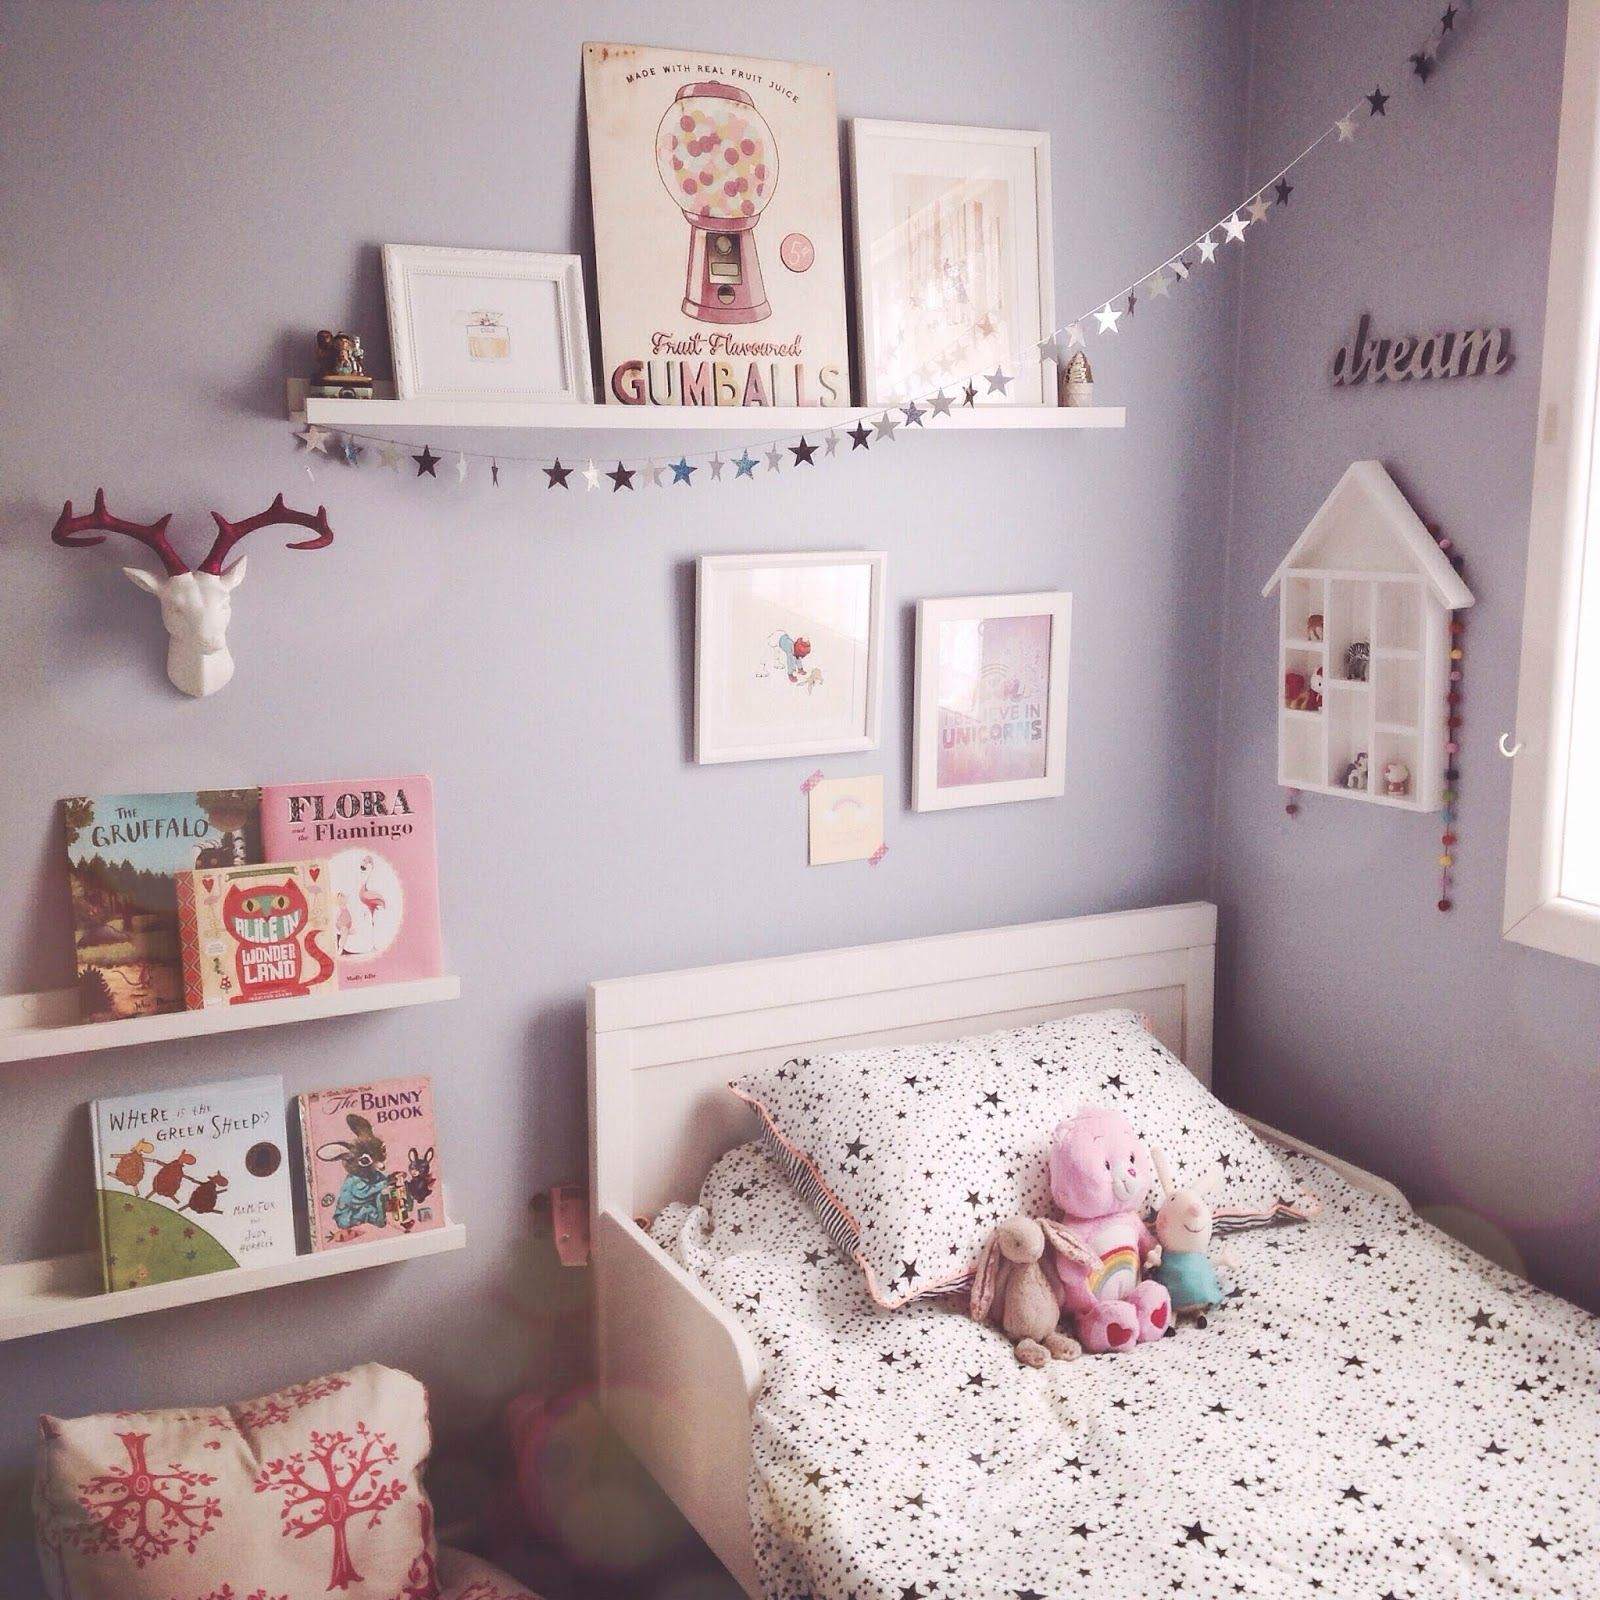 Ordinaire SOMETHING BEAUTIFUL: Chloeu0027s Room